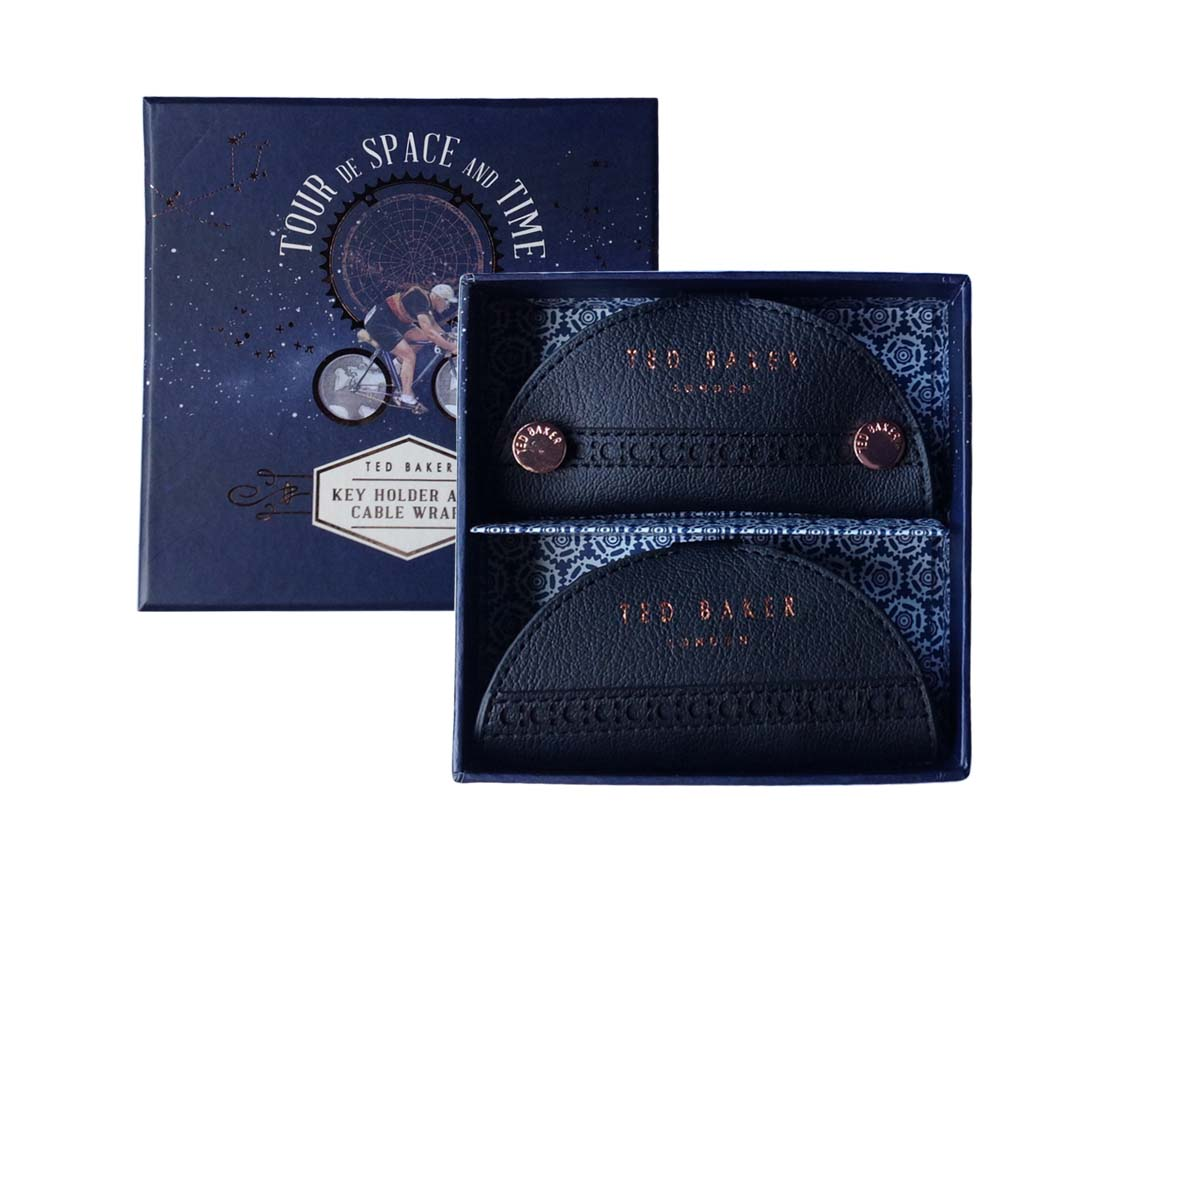 TED BAKER Space & Time Key Holder and Cable Wrap duo